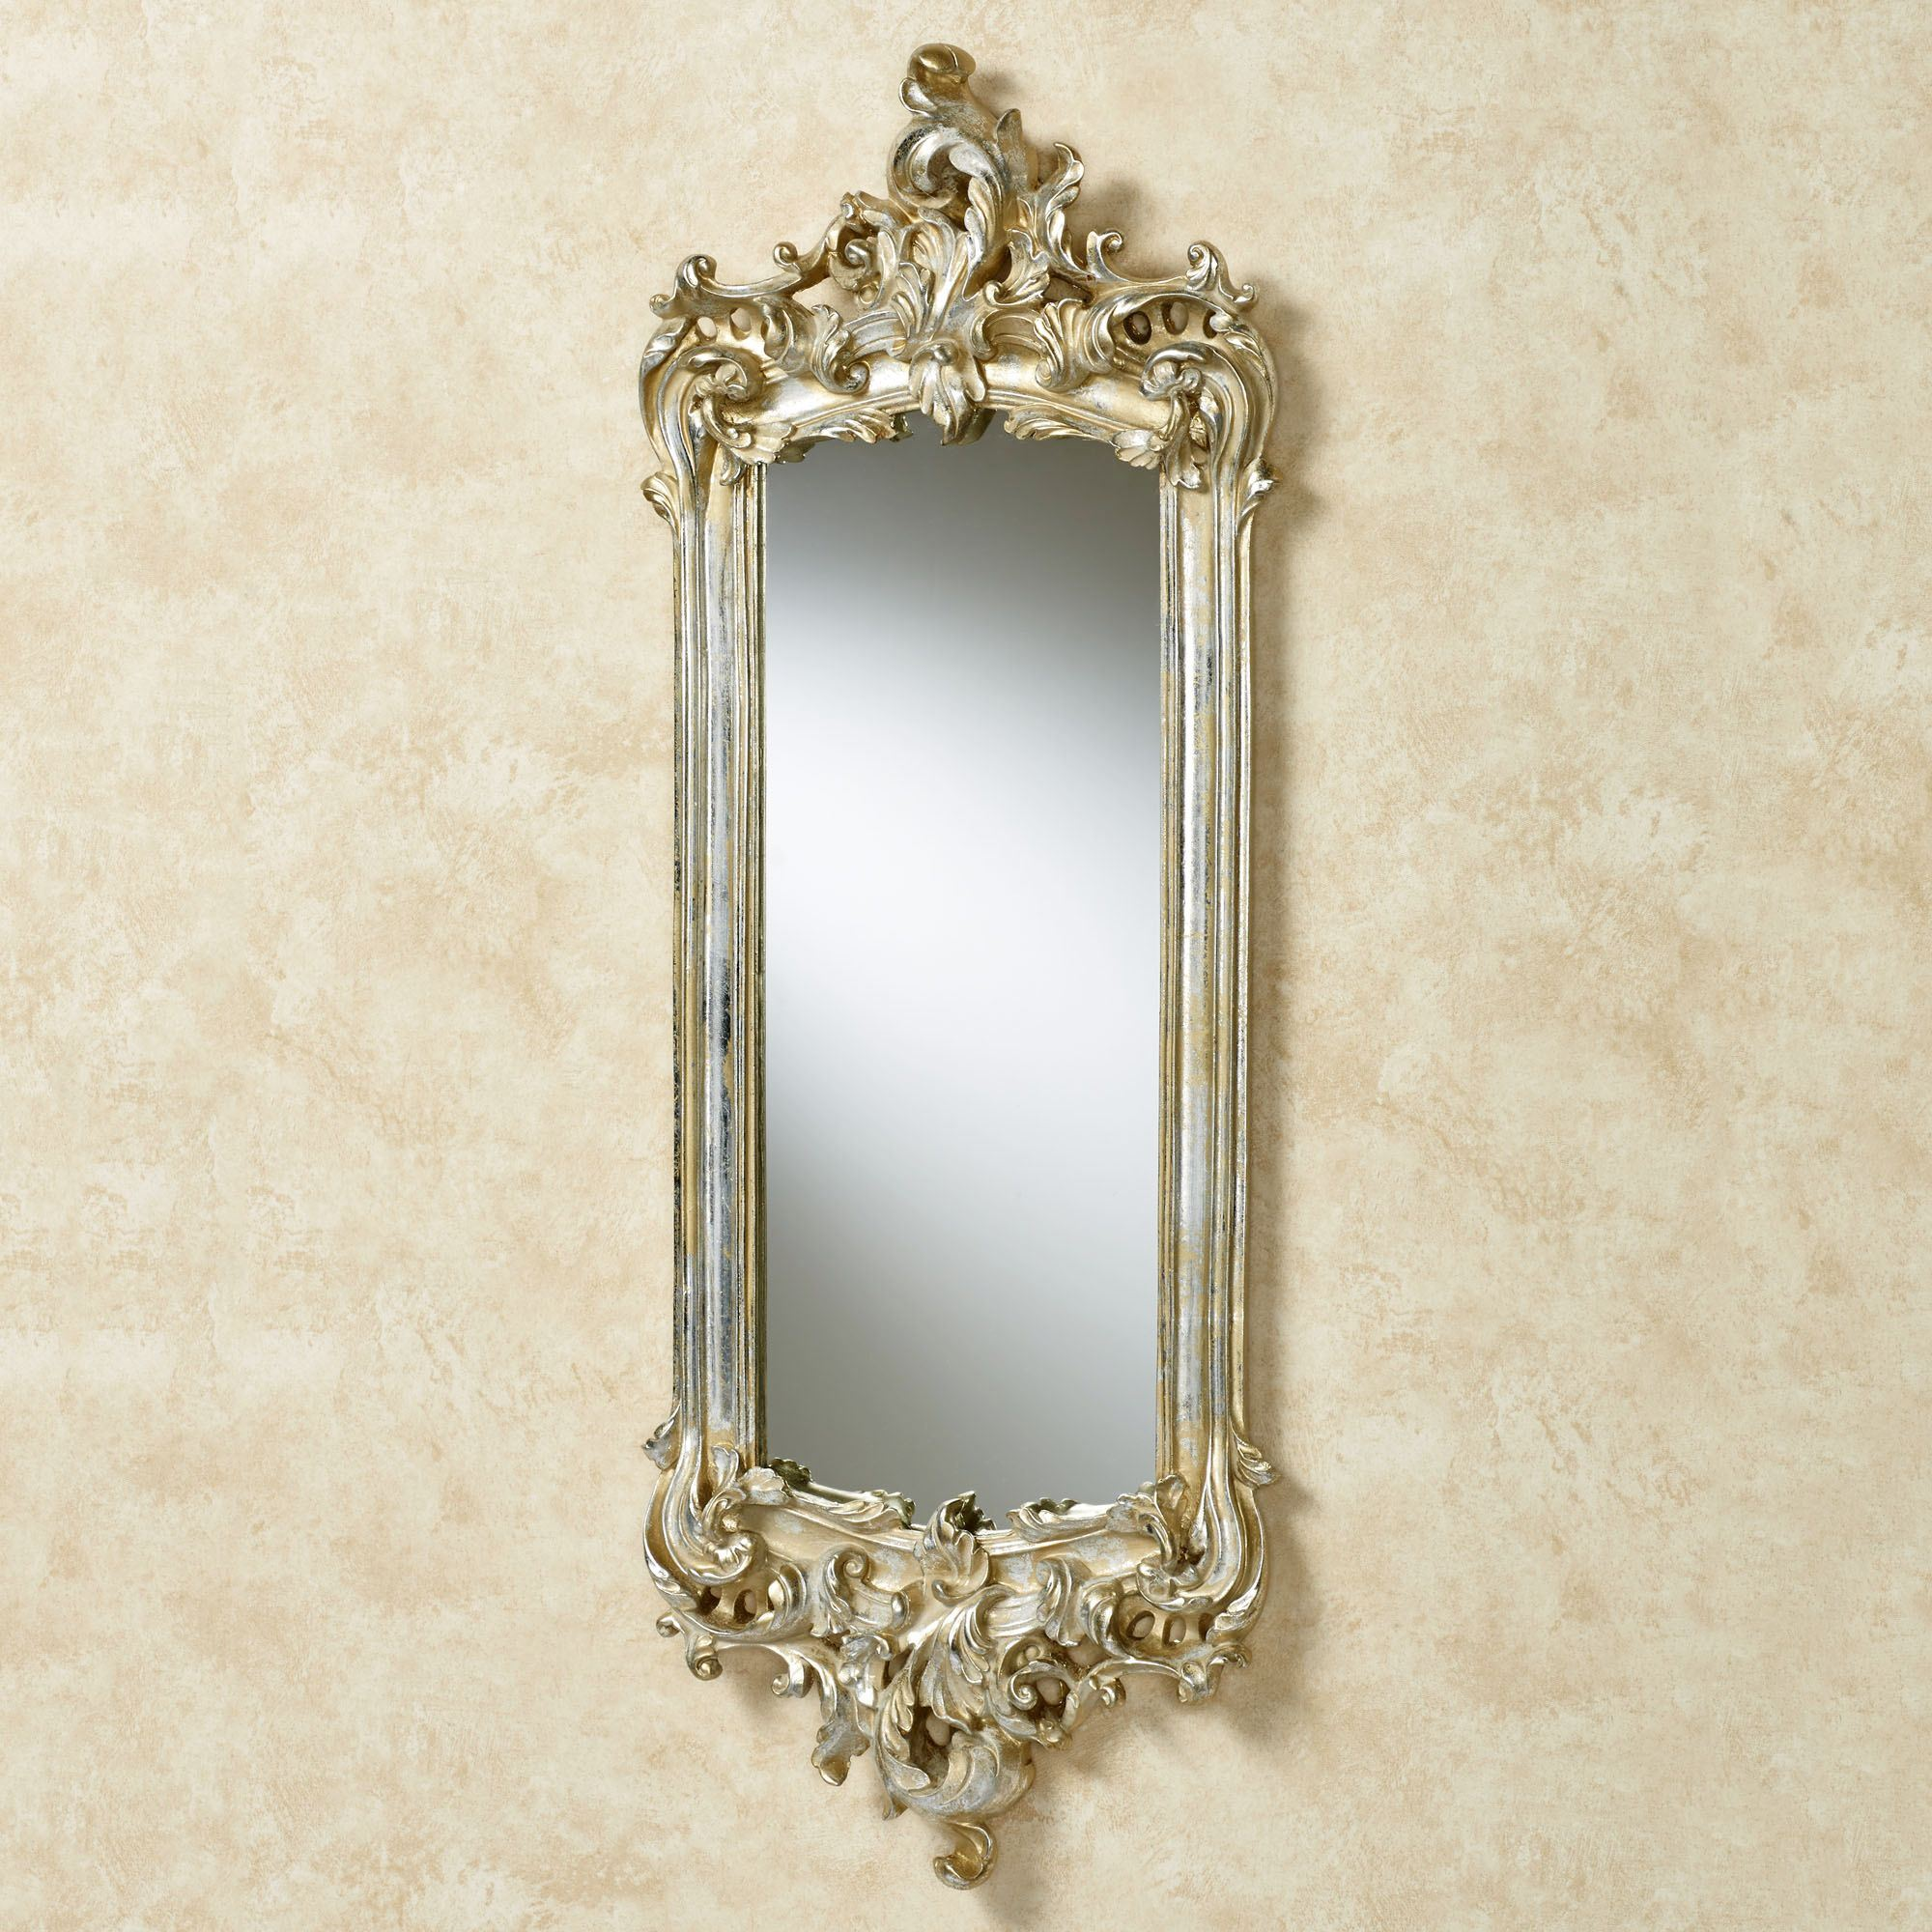 Lela silver gold acanthus wall mirror click to expand amipublicfo Gallery